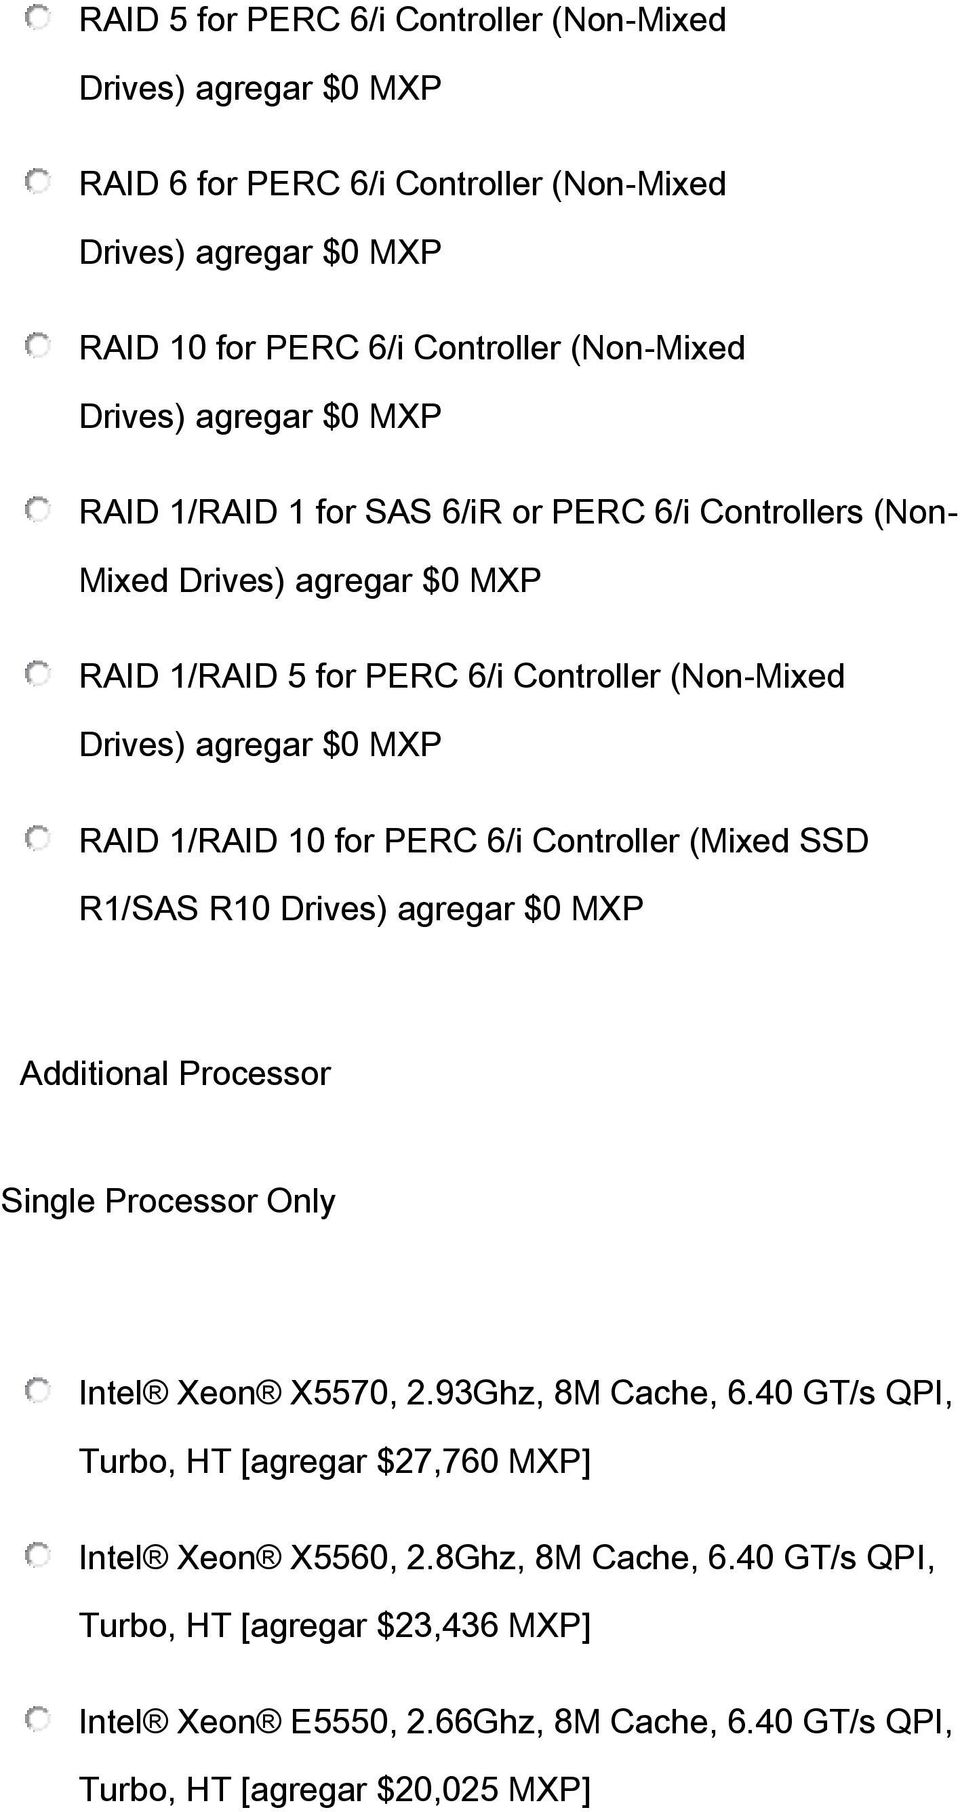 1/RAID 10 for PERC 6/i Controller (Mixed SSD R1/SAS R10 Drives) agregar $0 MXP Additional Processor Single Processor Only Intel Xeon X5570, 2.93Ghz, 8M Cache, 6.